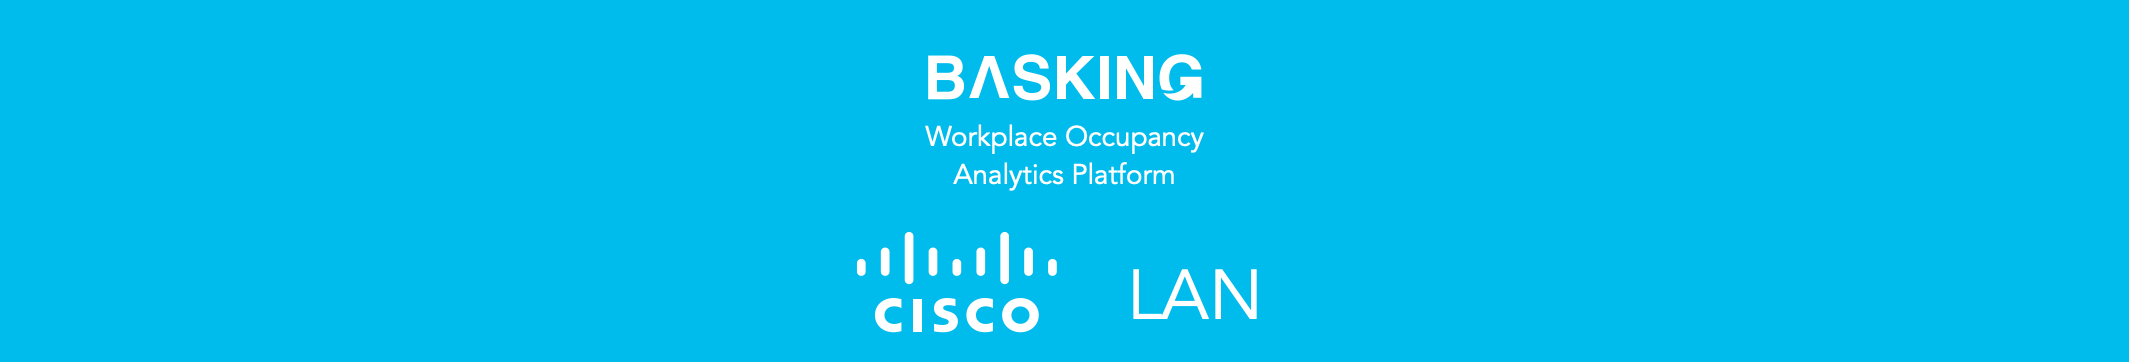 Basking.io_Workplace-Occupancy_powered-by-Cisco-Catalyst-LAN